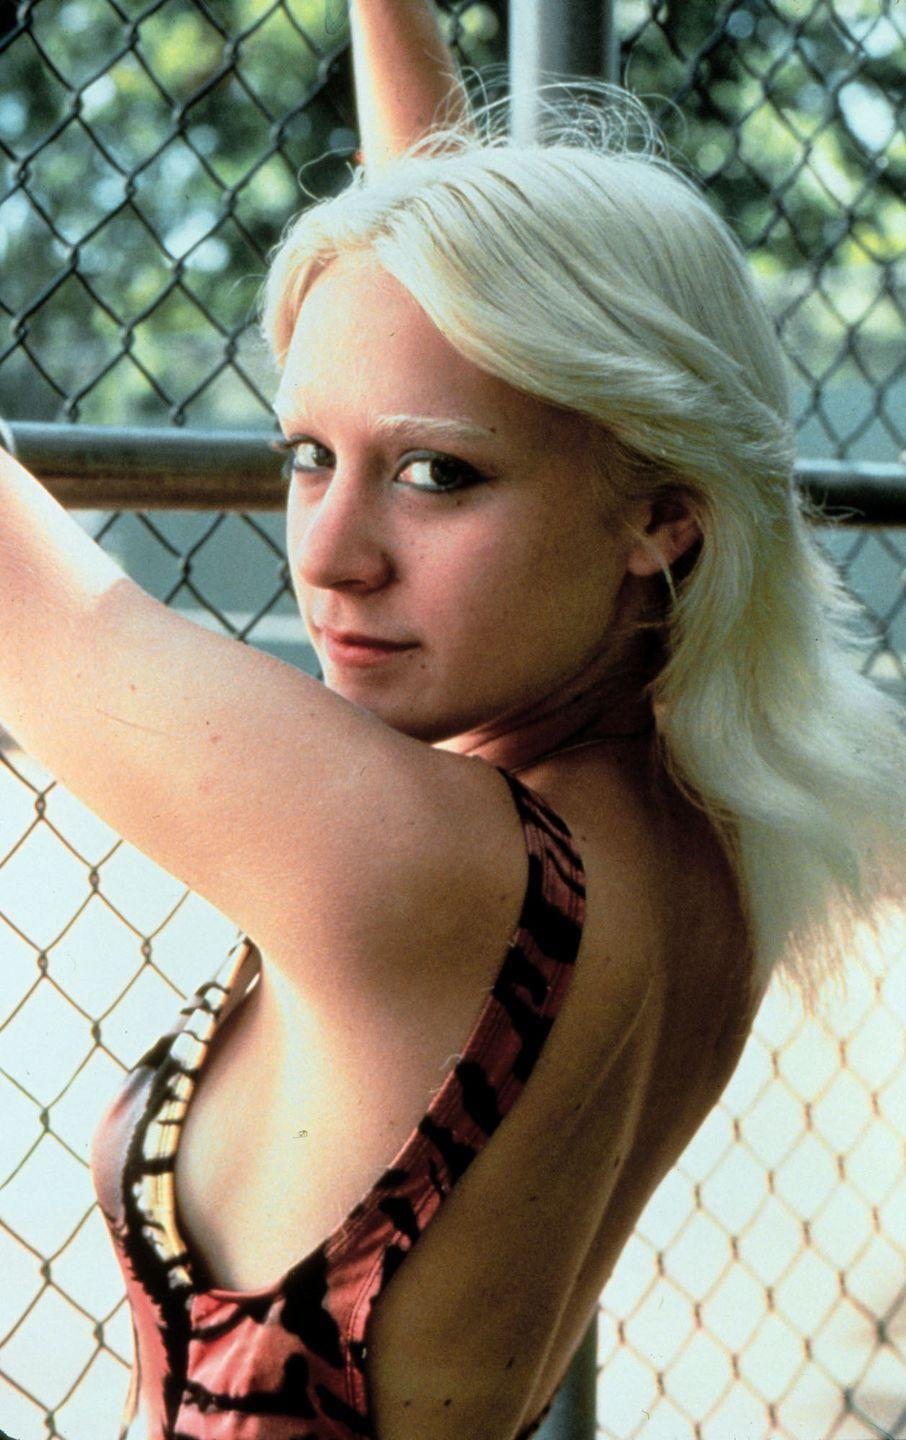 <p>Chloe Sevigny is the walking definition of cool, so we probably should have known that she would pull off a cool-toned bleached brow with ease. Come for the bleached brow, stay for the Abba-esque 70s bangs. </p>